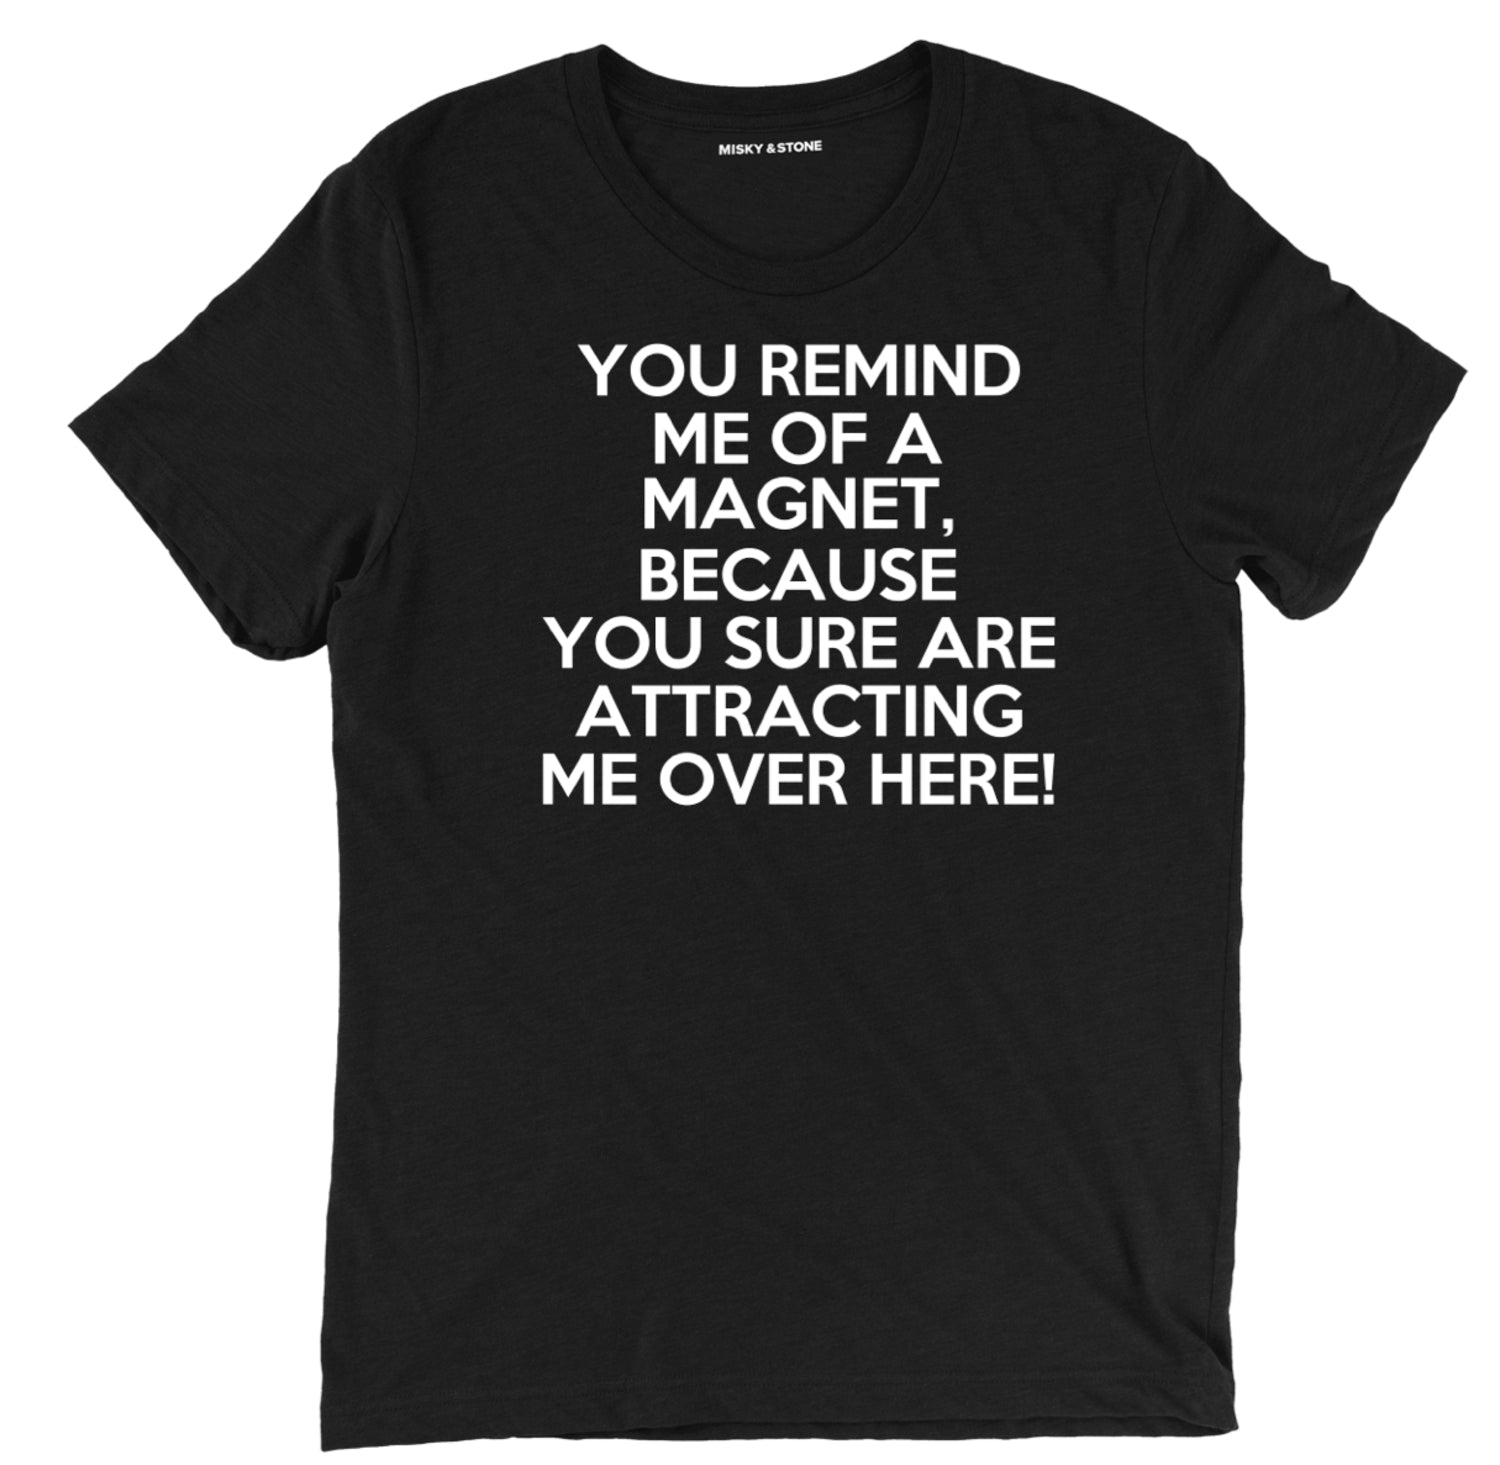 you remind me of a magnet sarcastic t shirts, funny attracted t shirt sarcastic shirts, magnet pick up line sarcastic tee shirts, sarcastic tees, sarcastic t shirt sayings, sarcastic t shirts quotes, funny sarcastic t shirts,